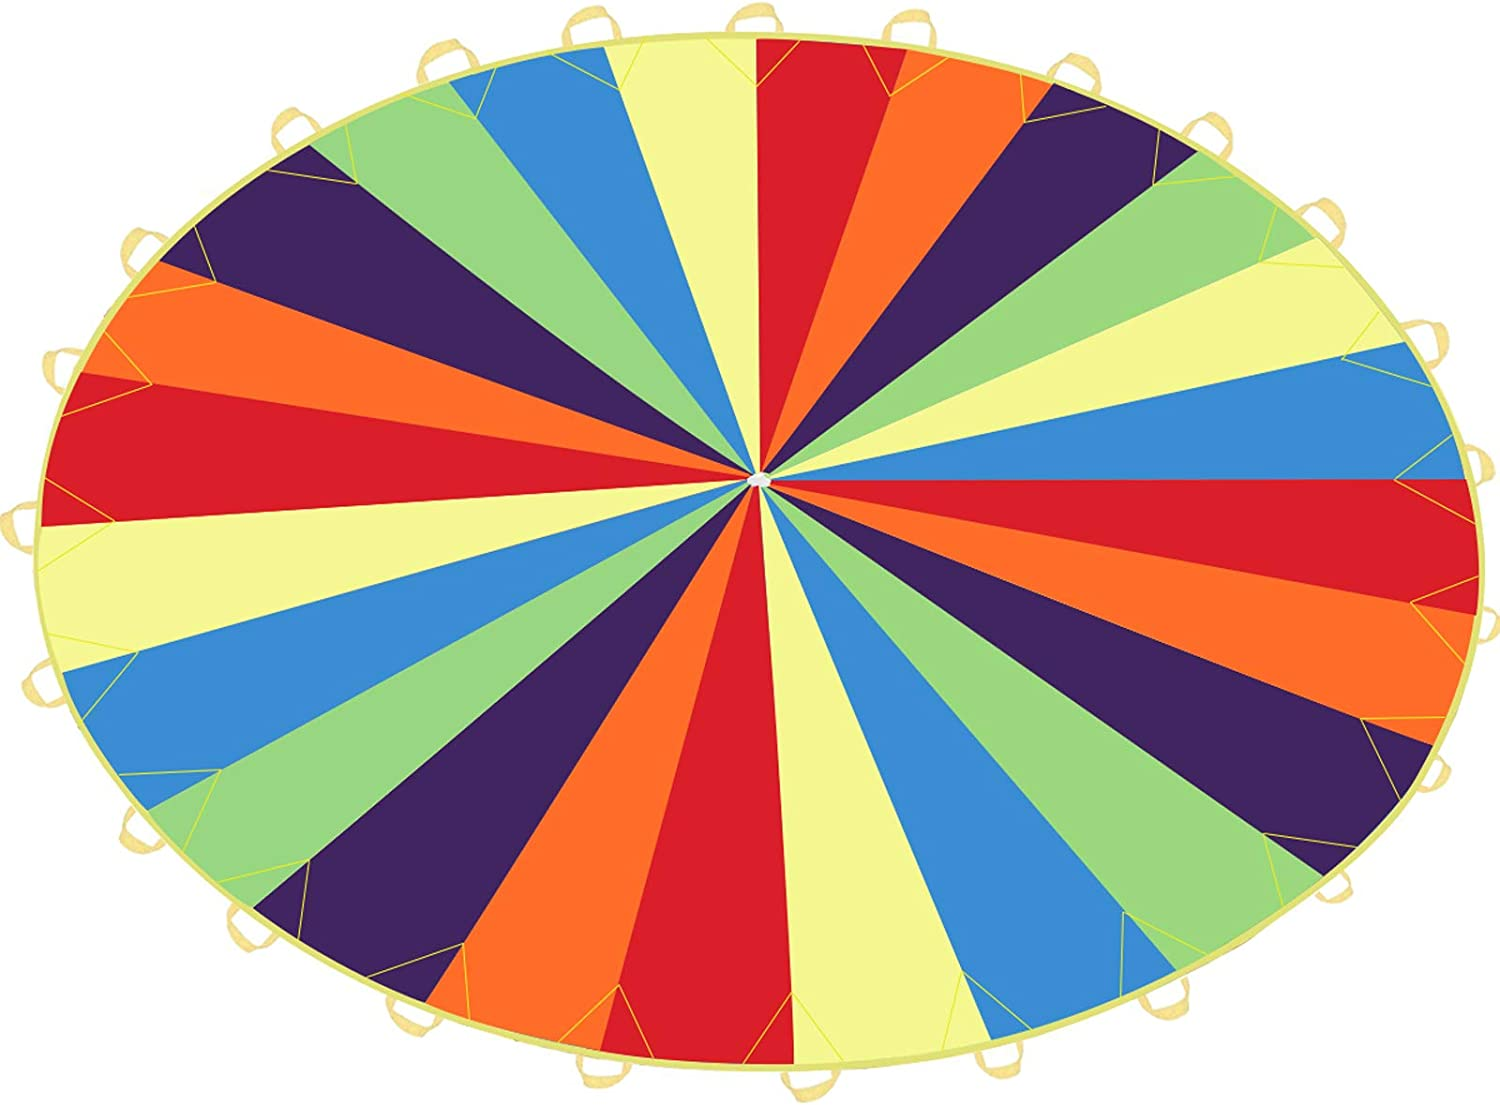 Sonyabecca Play Parachute 20ft with 24 Handles for Kids Cooperative Team Building Games